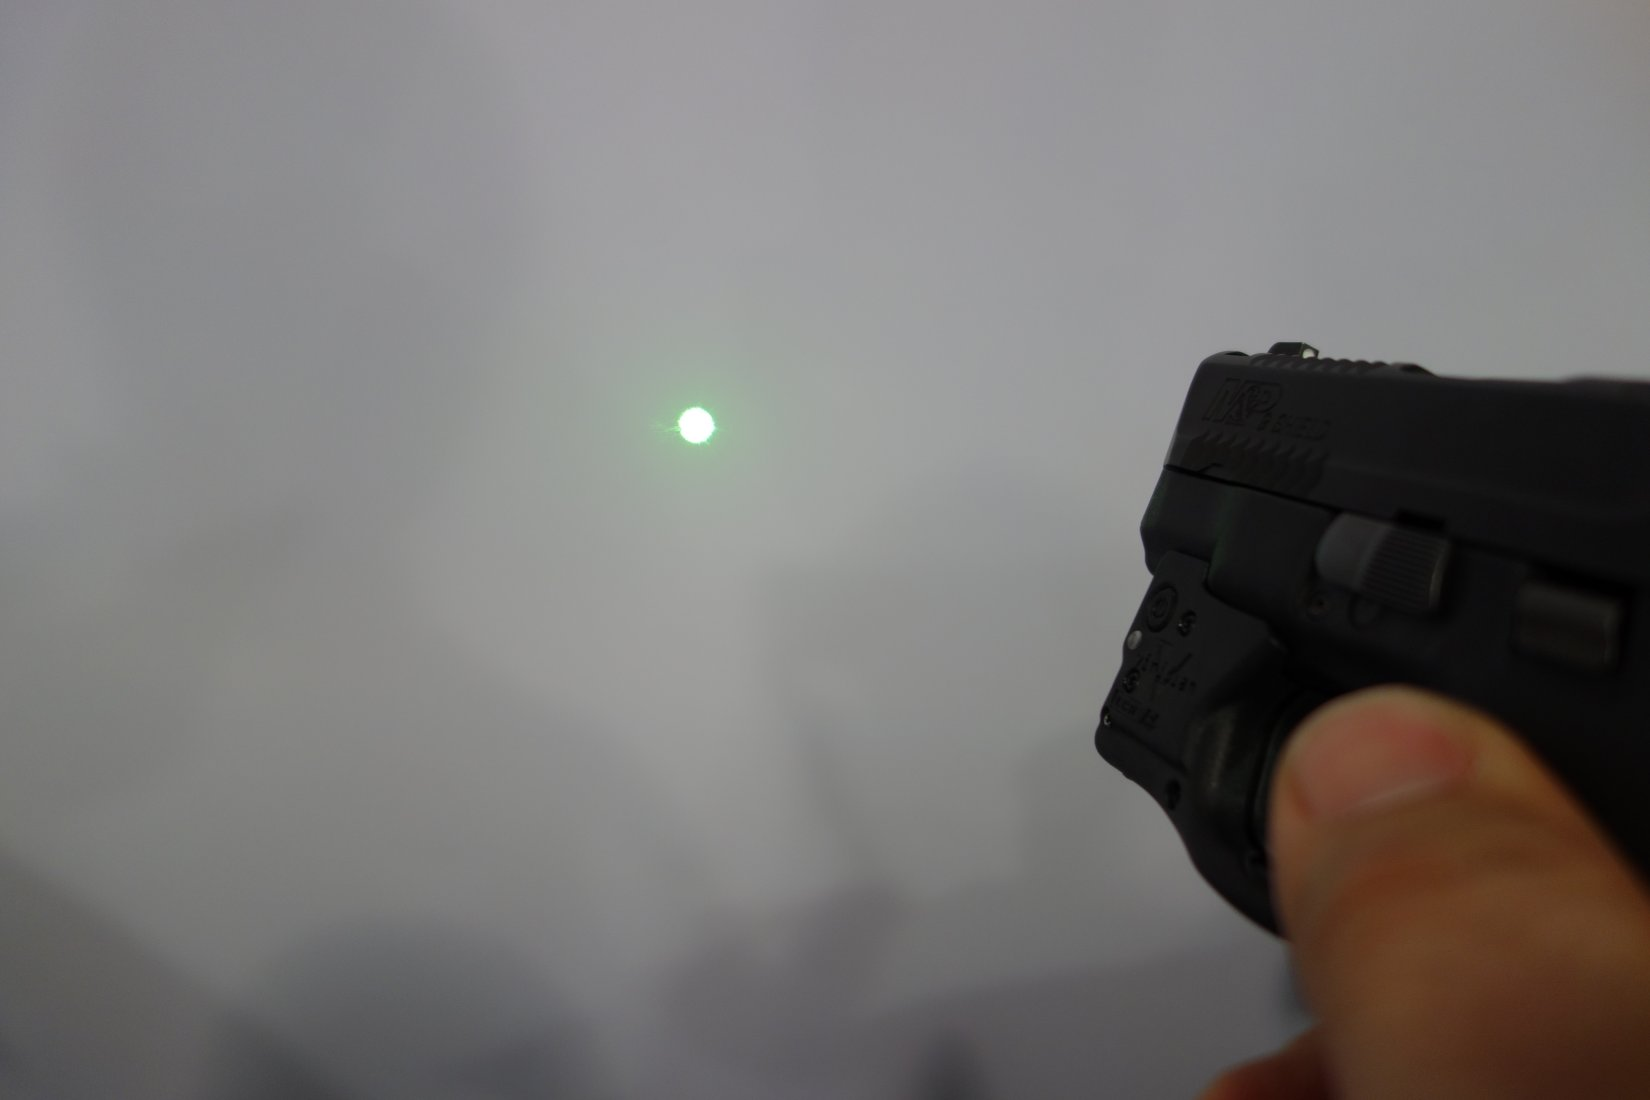 Viridian Green Laser Sights VGLS C5L C5L R Tactical Aiming Laser Sight Tactical White Light Innovative GunFighter Solutions Smith  Wesson MP Shield Sub Compact Pistol SHOT Show 2014 David Crane DefenseReview.com DR 5 Viridian Green Laser Sights (VGLS) X5L, X5L R, C5L, C5L R and Reactor/R5 Tactical Aiming Laser Sight (Green and Red Laser)/Tactical White Light Modules for Combat/Tactical Pistols (Video!)